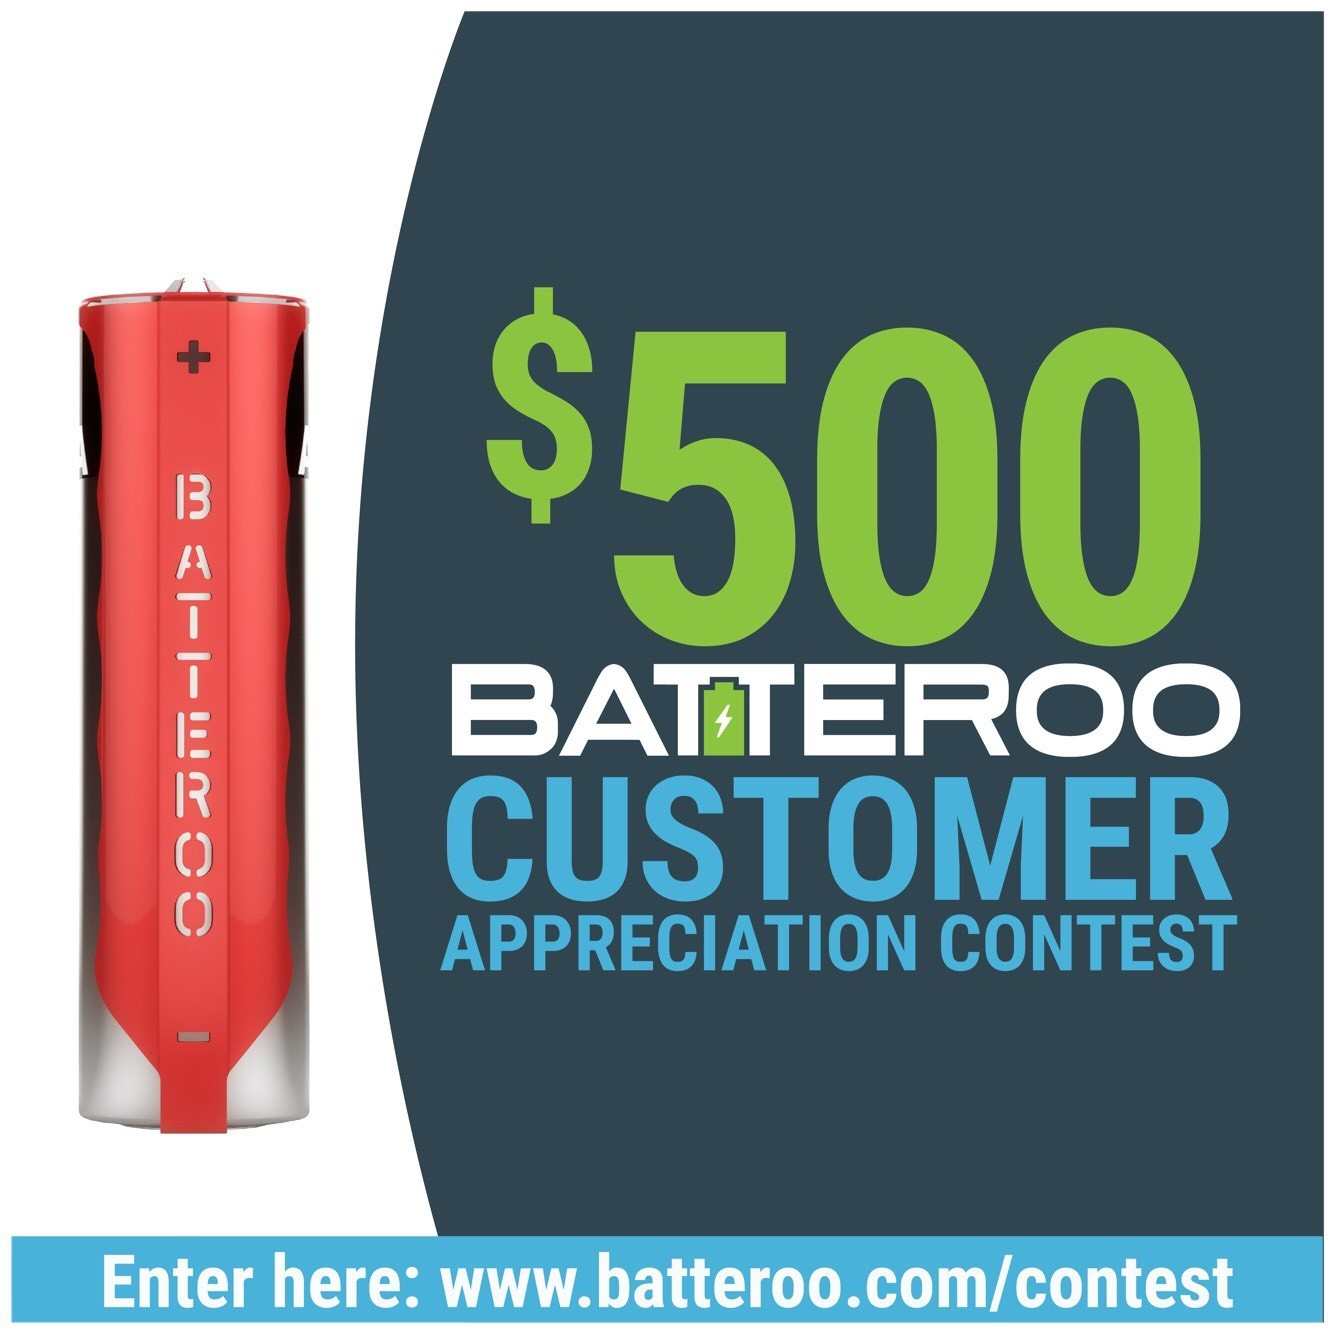 Batteroo Customer Appreciation Contest ($500 Every Month!)